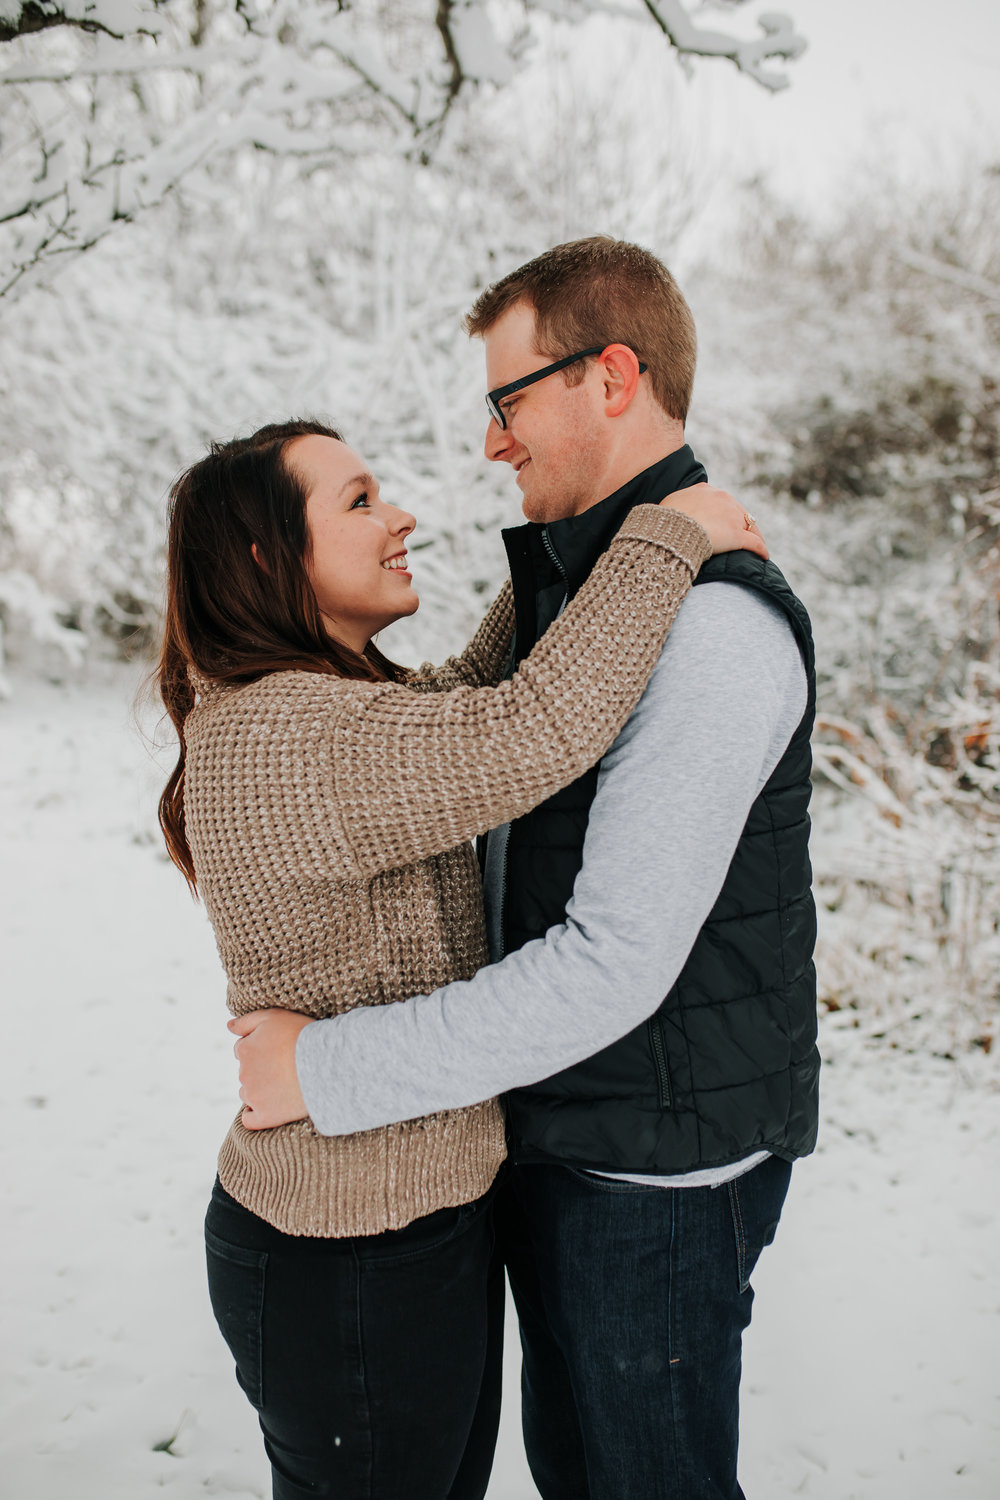 Vanessa & Dan - Engaged - Nathaniel Jensen Photography - Omaha Nebraska Wedding Photographer - Standing Bear Lake - Snowy Engagement Session-23.jpg